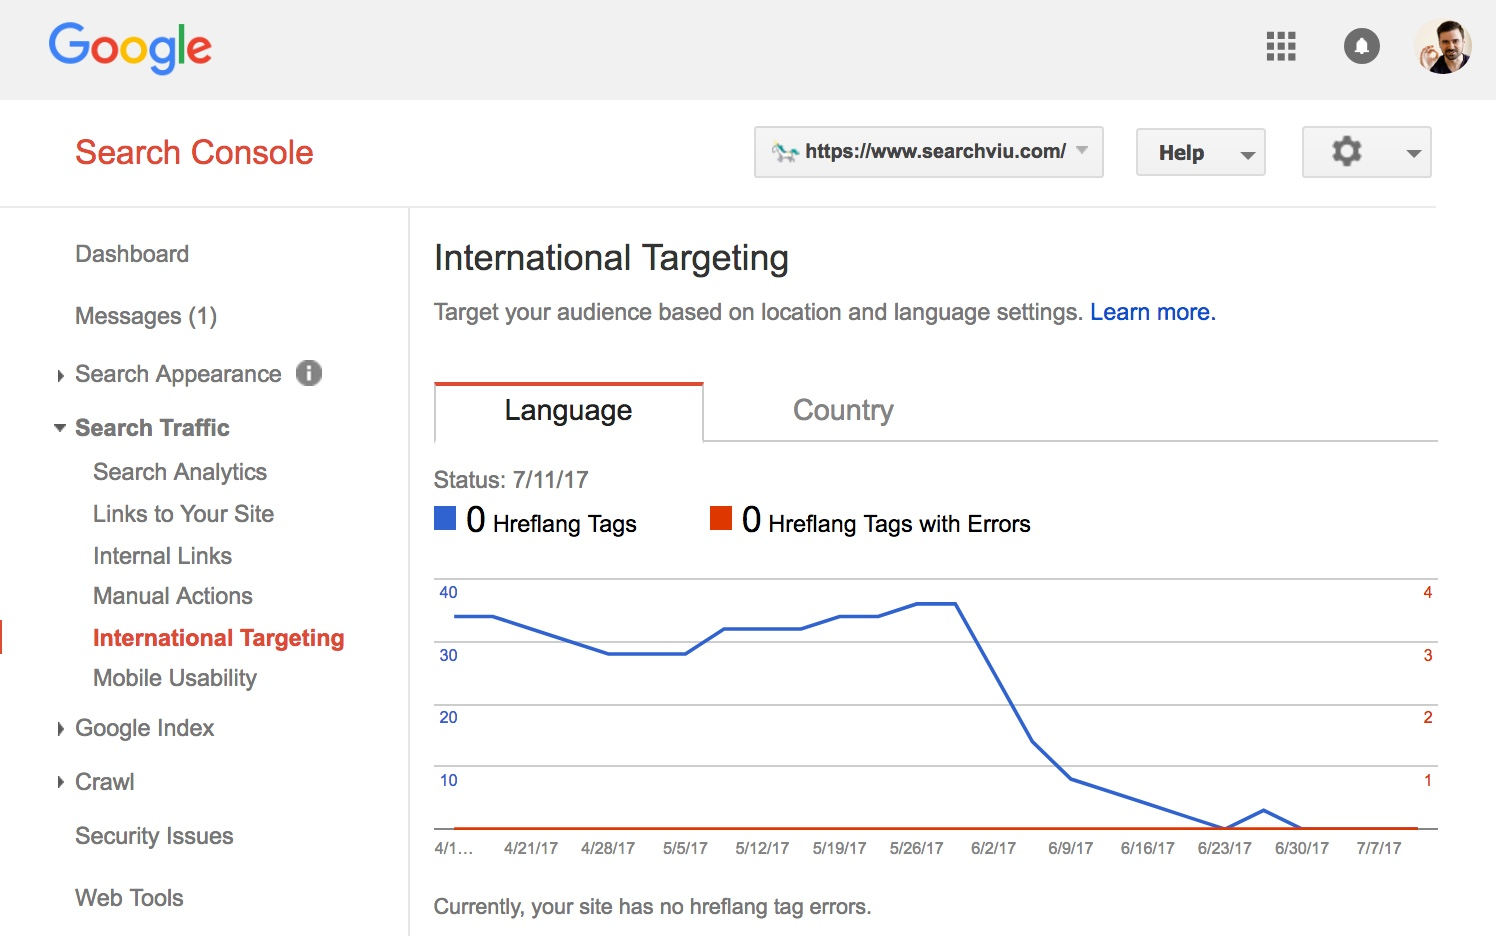 The hreflang count in Google Search Console went down